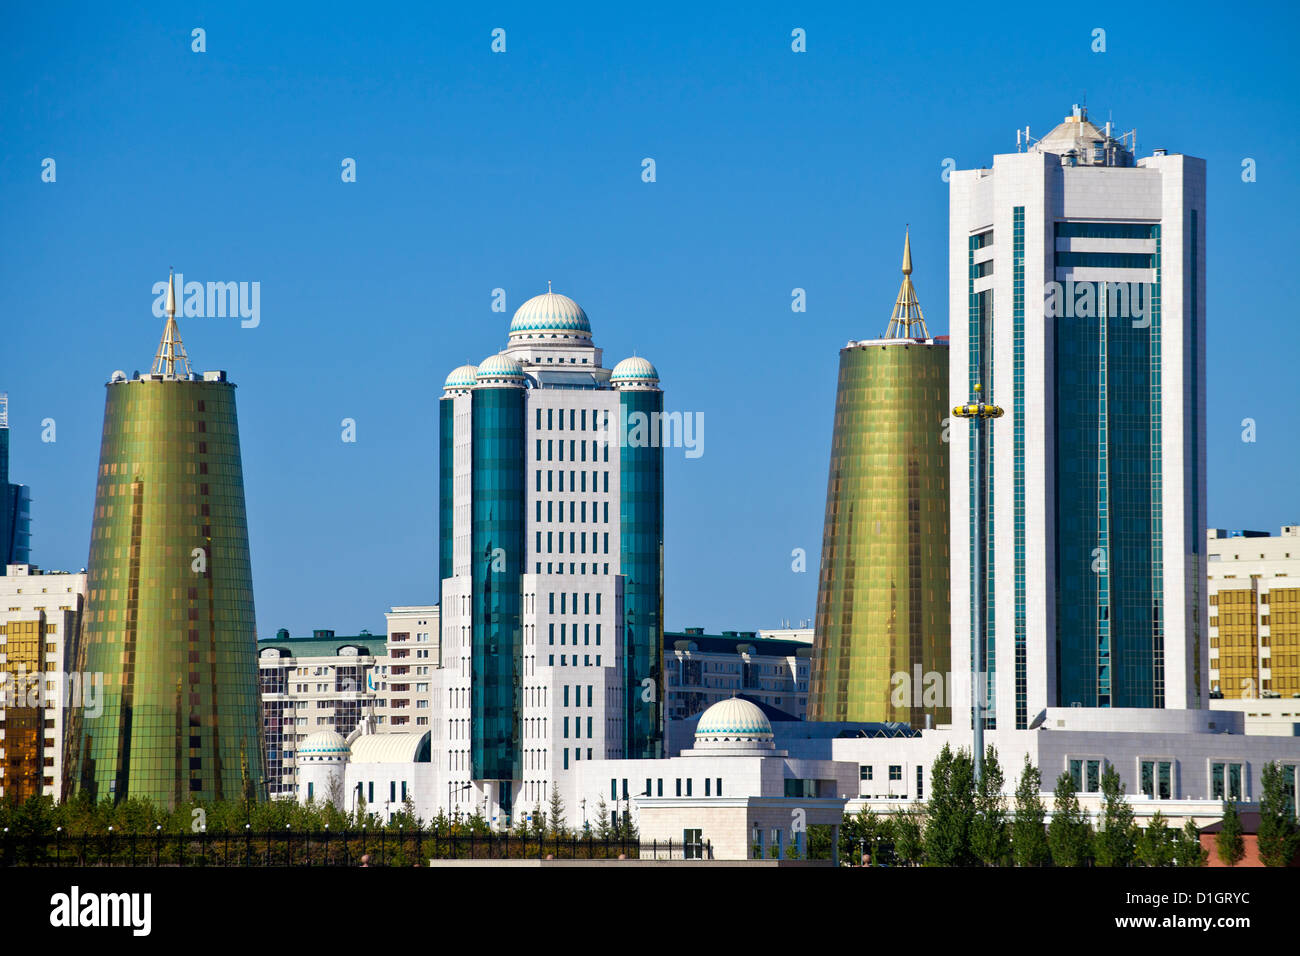 City skyline, Astana, Kazakhstan, Central Asia, Asia - Stock Image